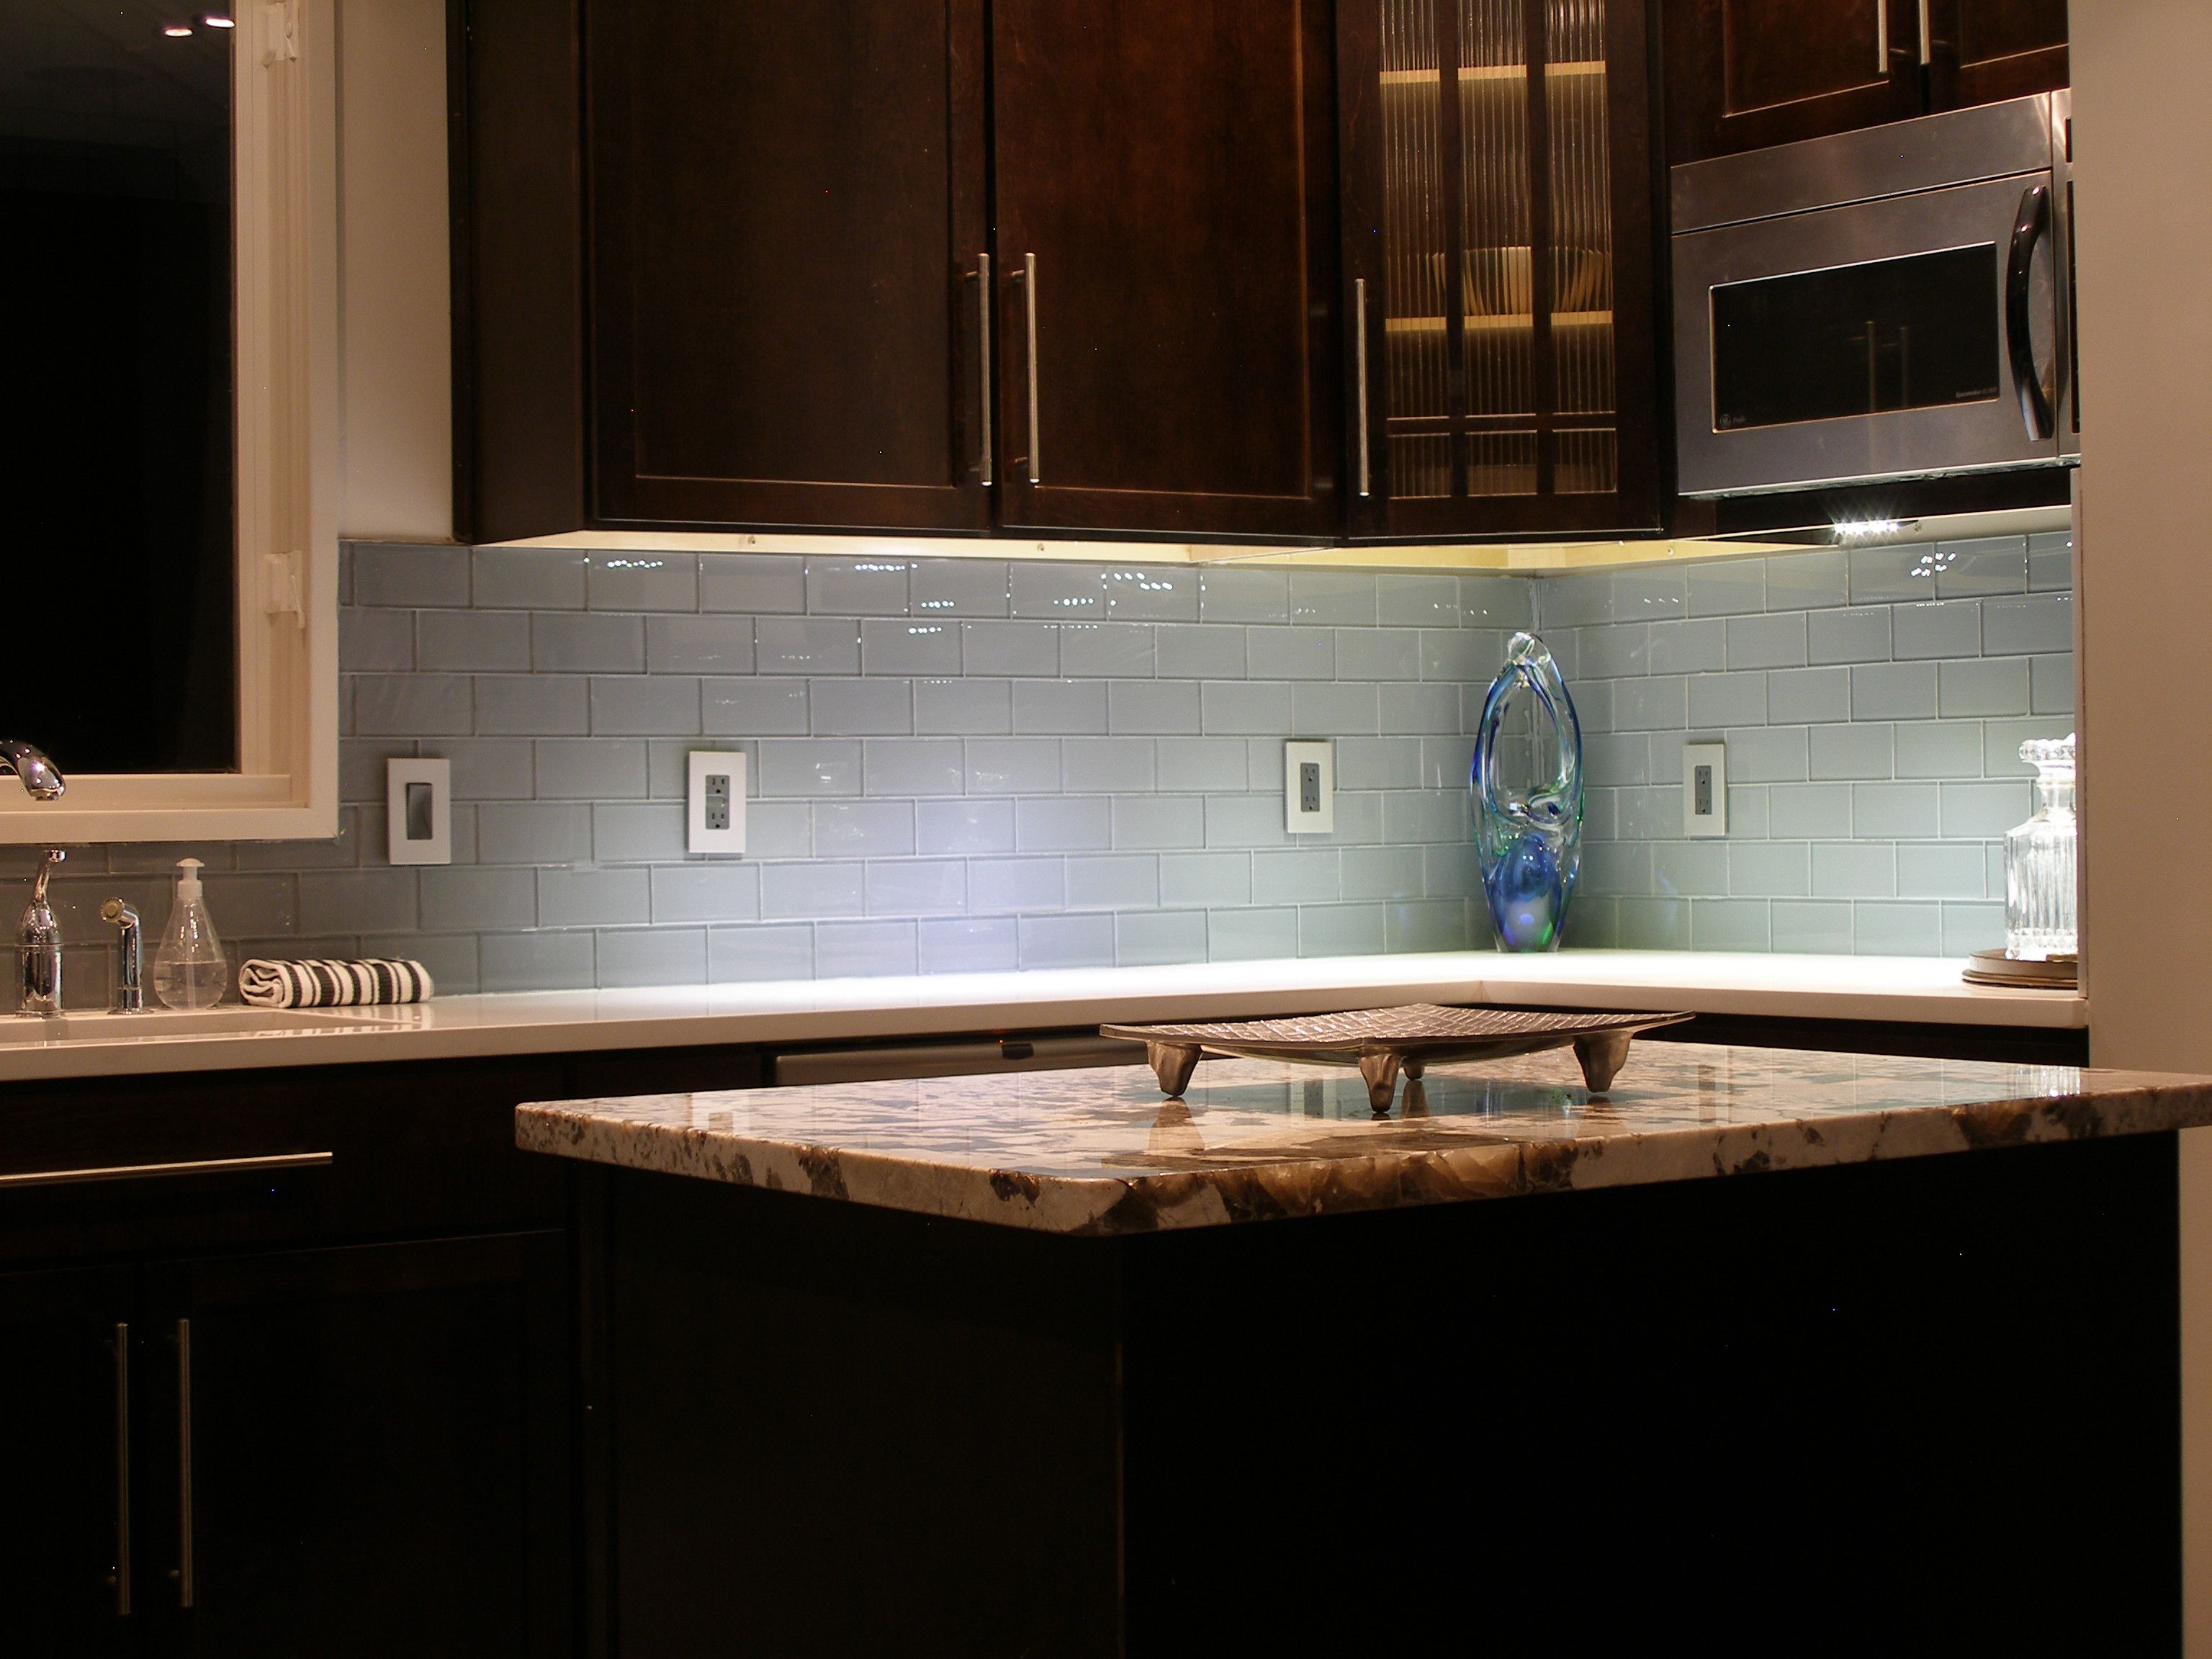 Swish Glass Subway Tile Soft Blue Backsplash With Brown Wooden Kitchen Cabinet Also White Marble Countertop